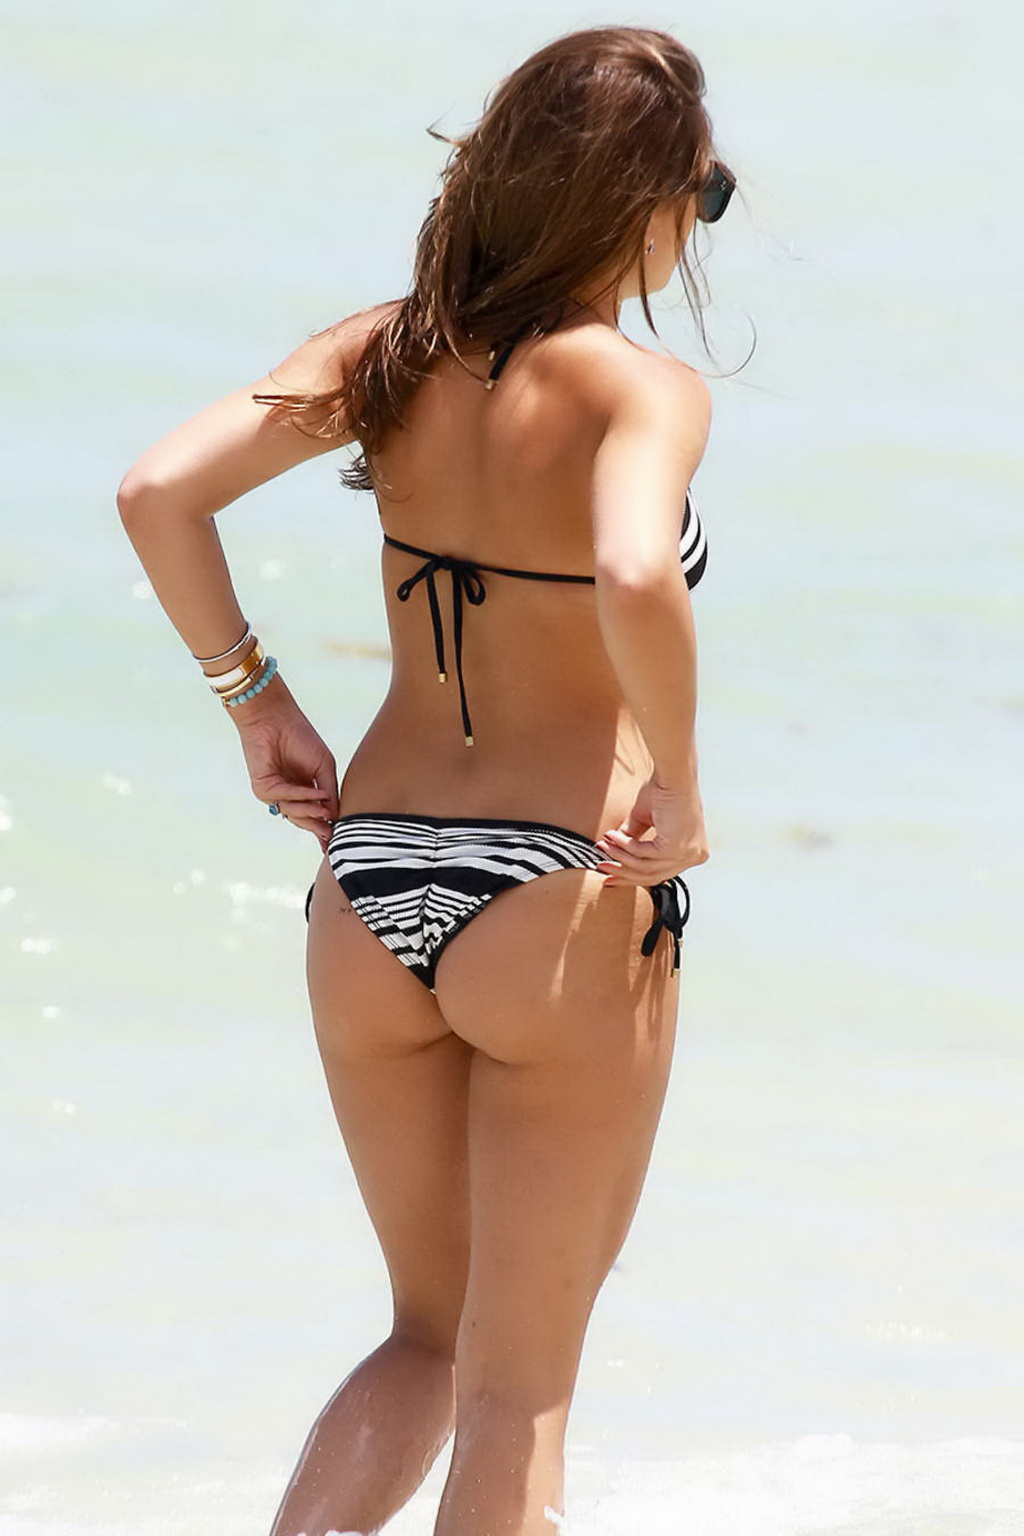 Keleigh Sperry showing off her curvy body in tiny monochrome bikini at the beach in Miami